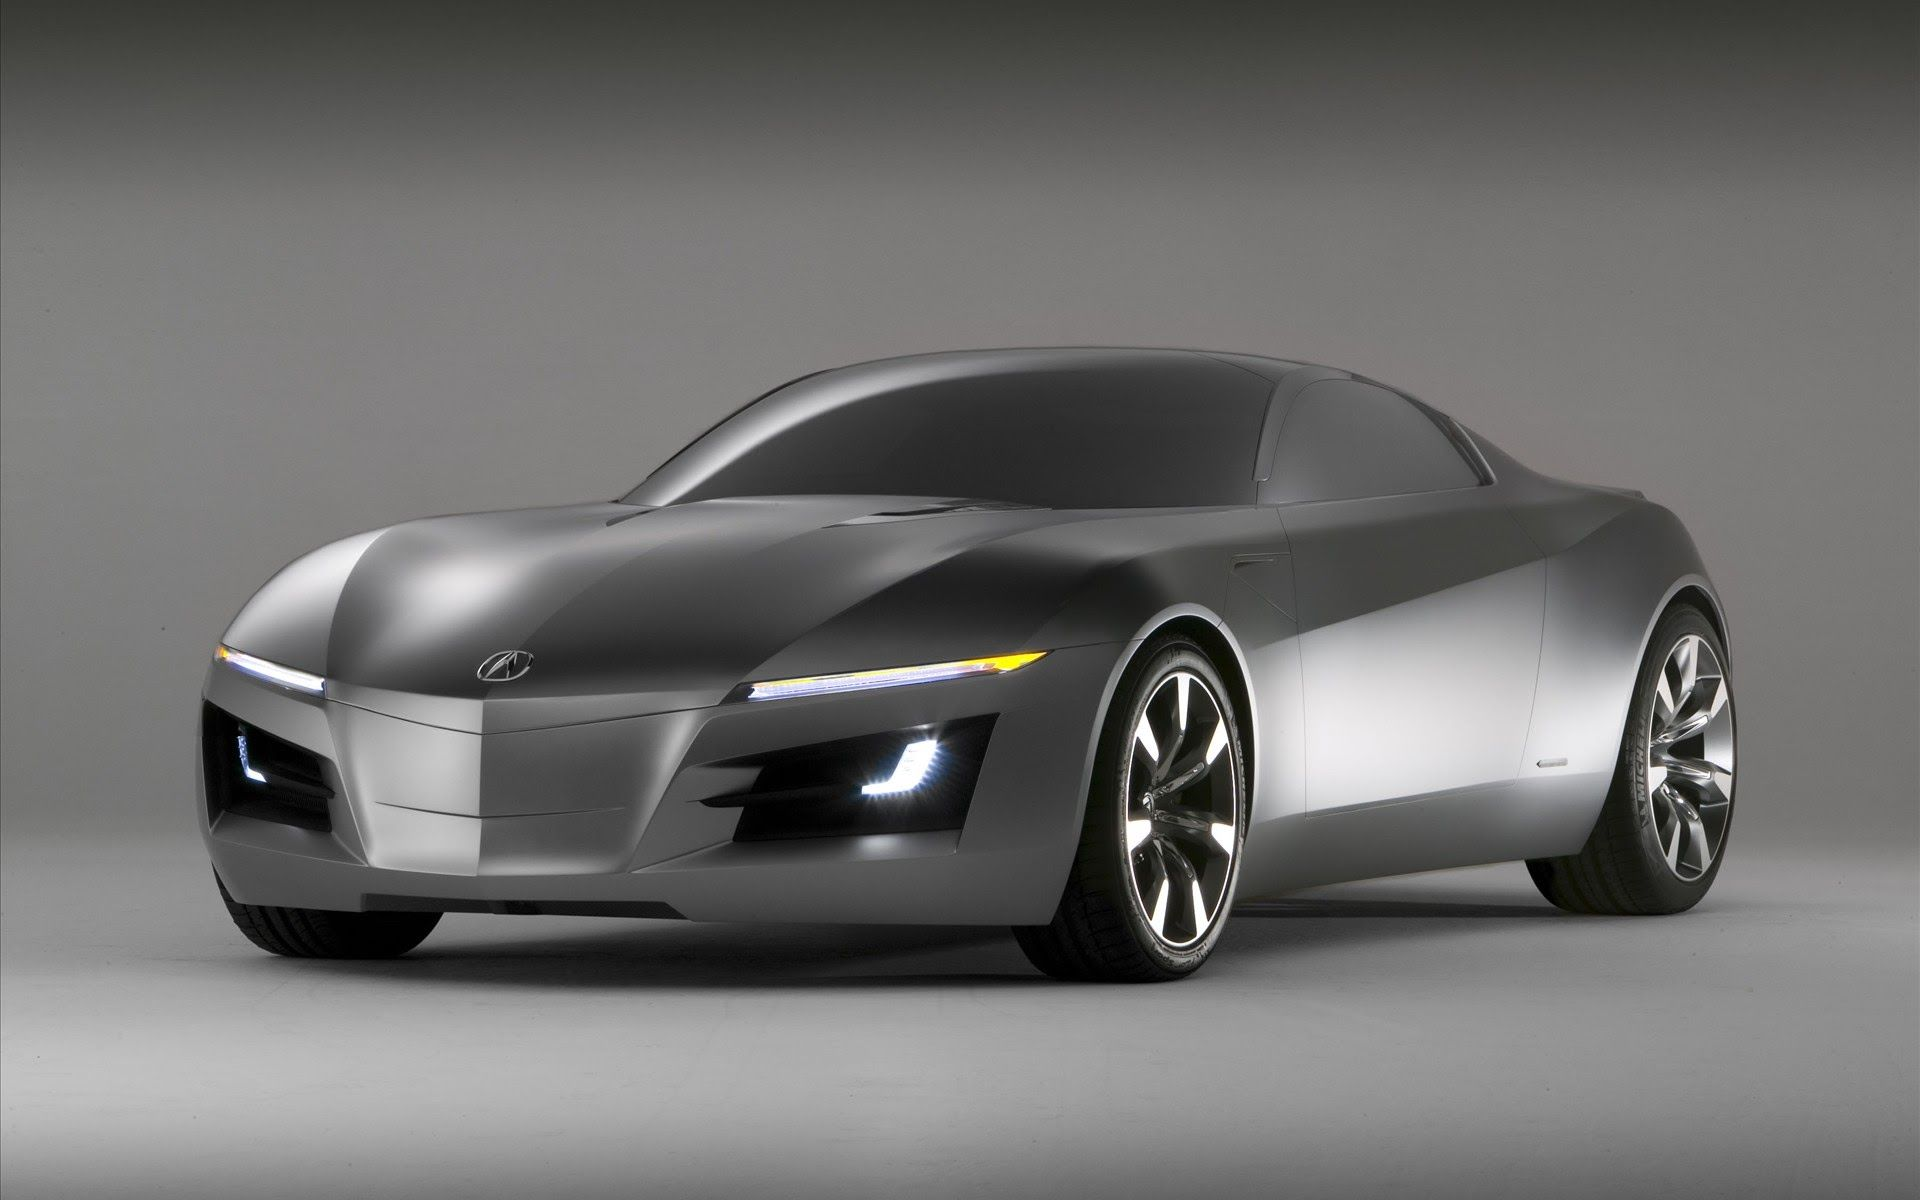 Acura Sports Car (With images) Sports car, Acura sports